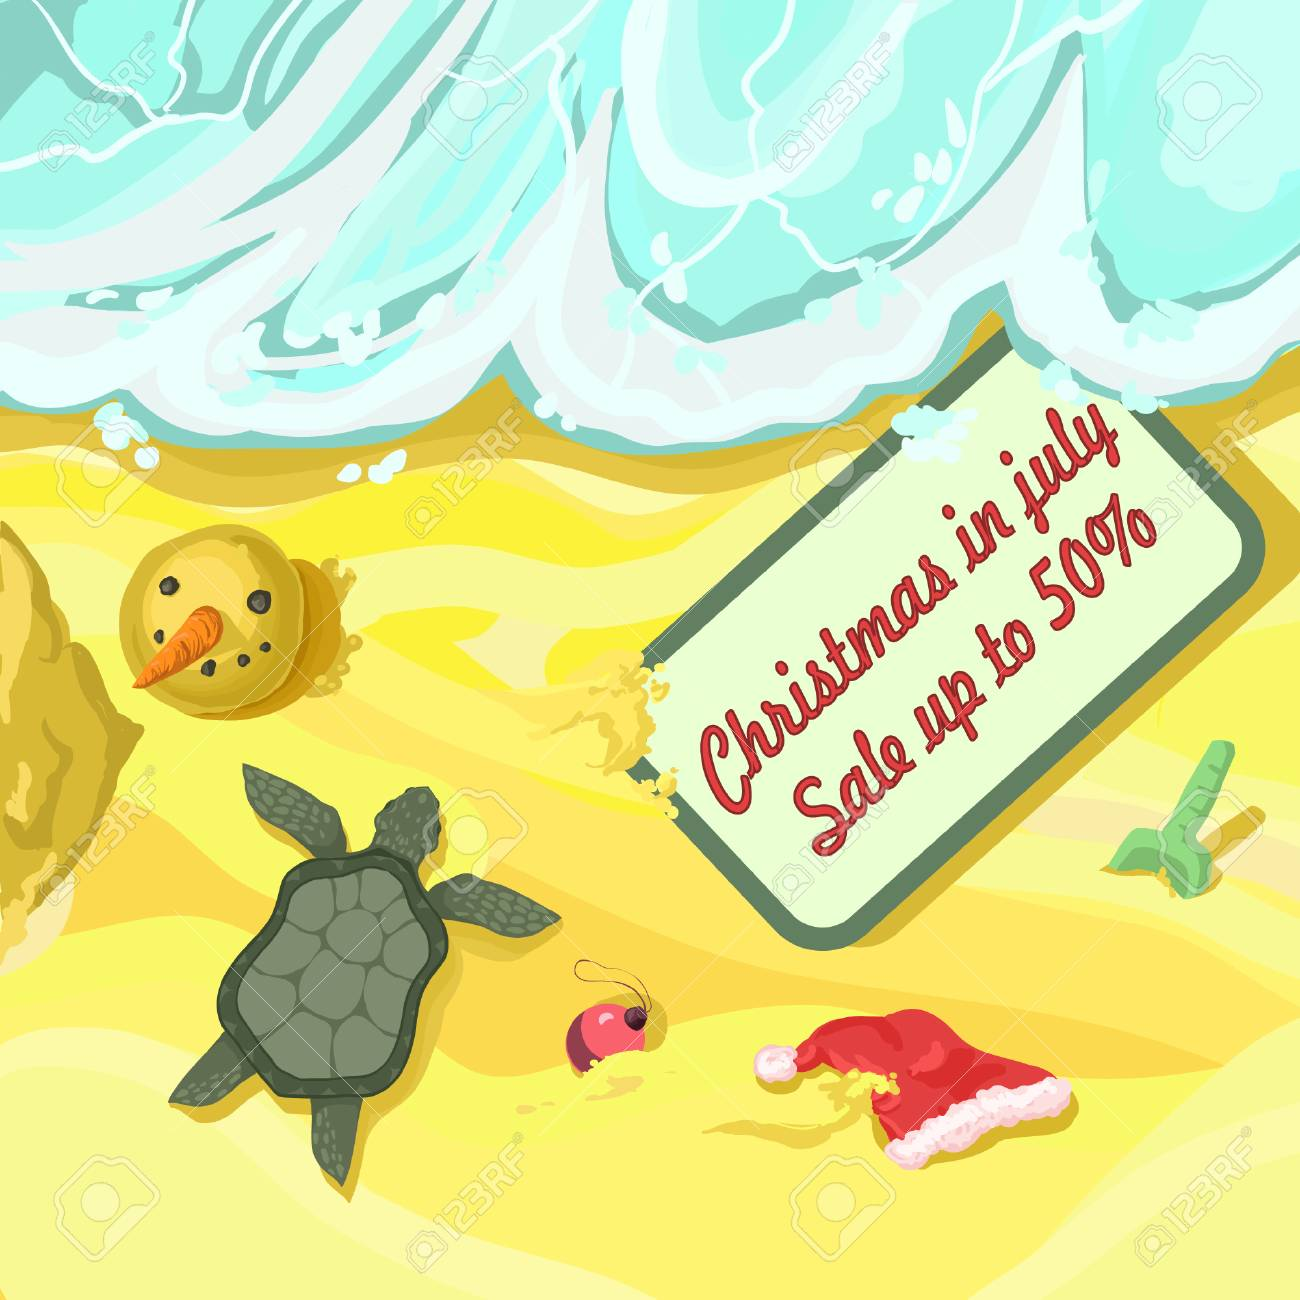 Happy Christmas In July Images.Merry Christmas And A Happy New Year In July Vector Sunny Postcard